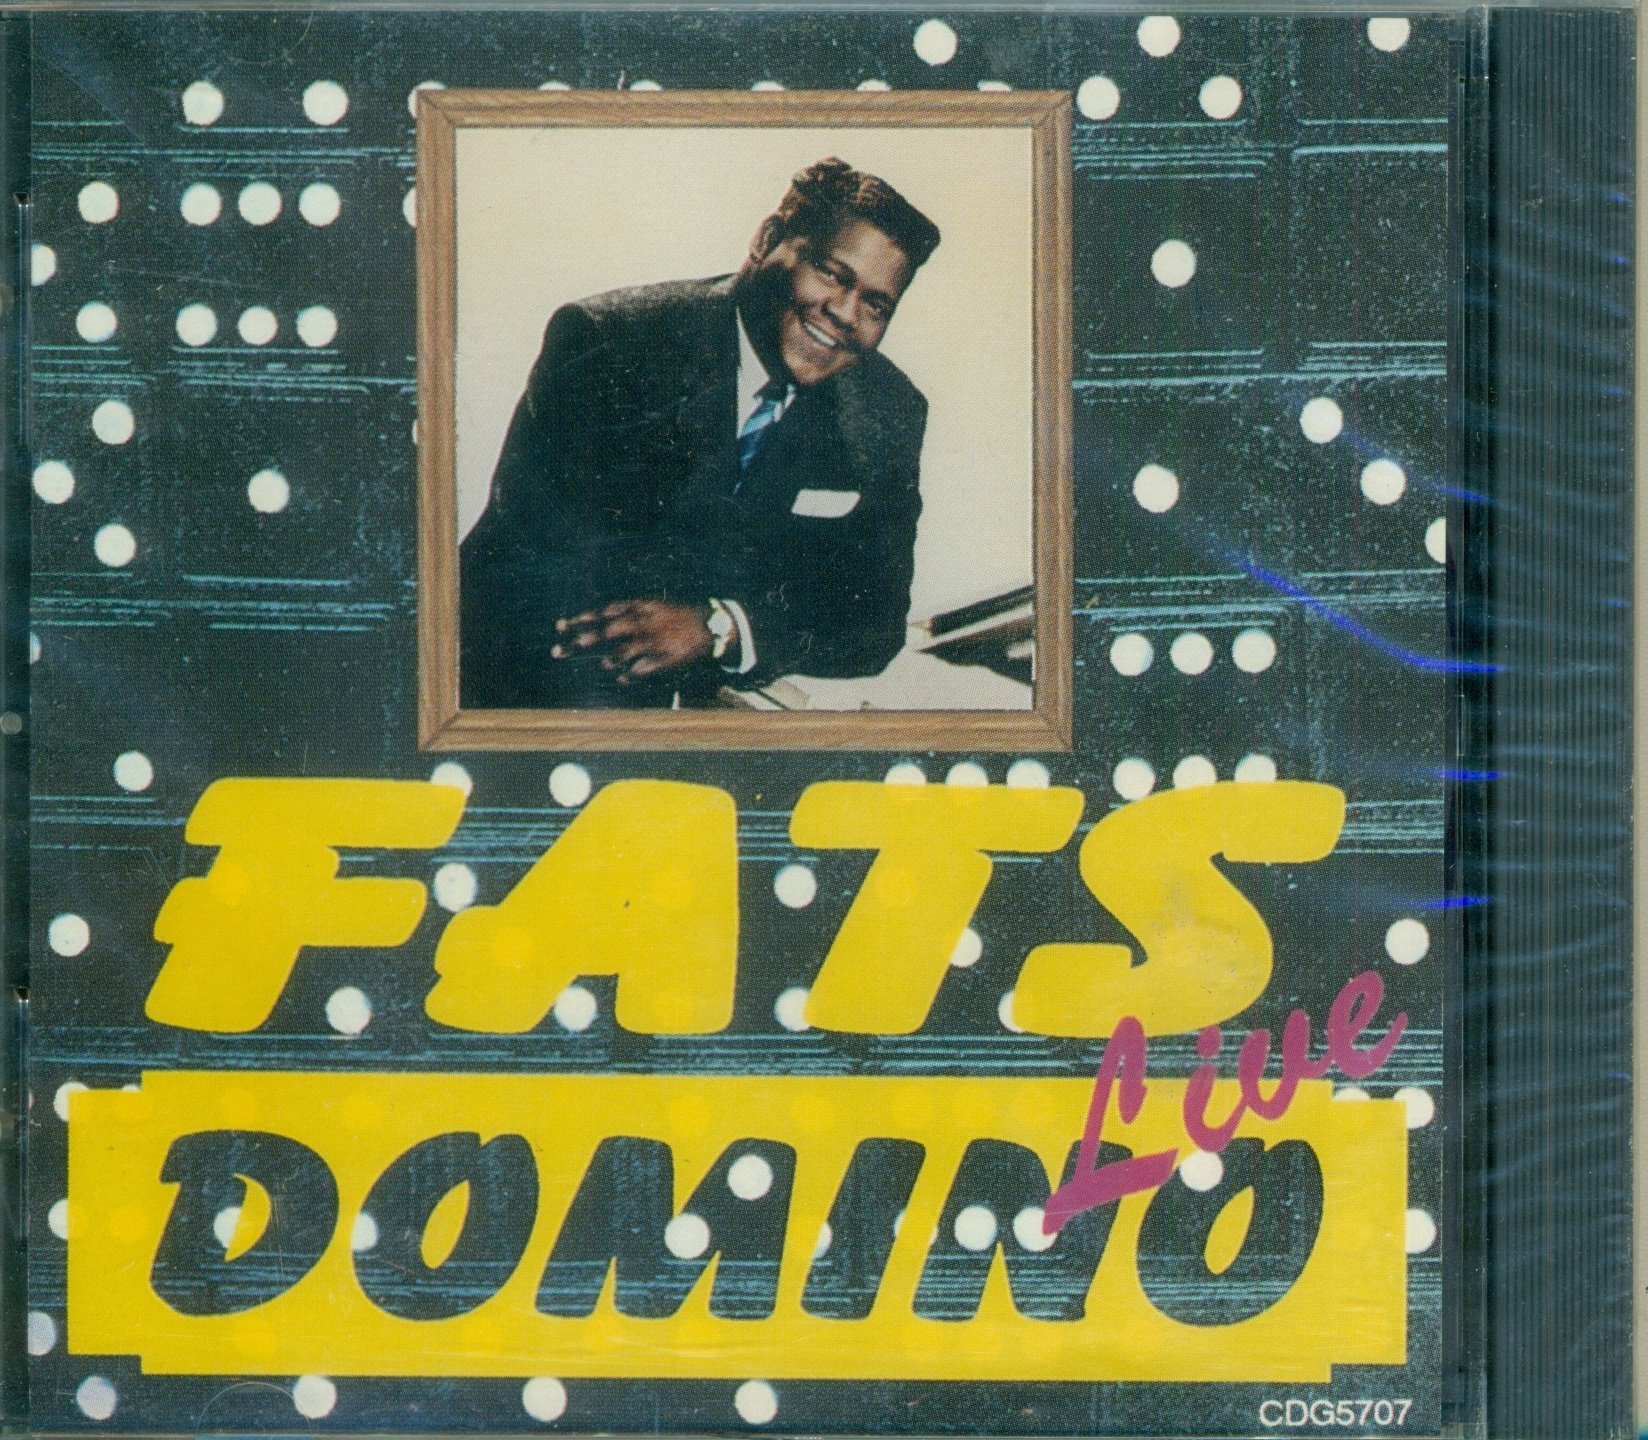 Fats Domino Live by Golden Circle